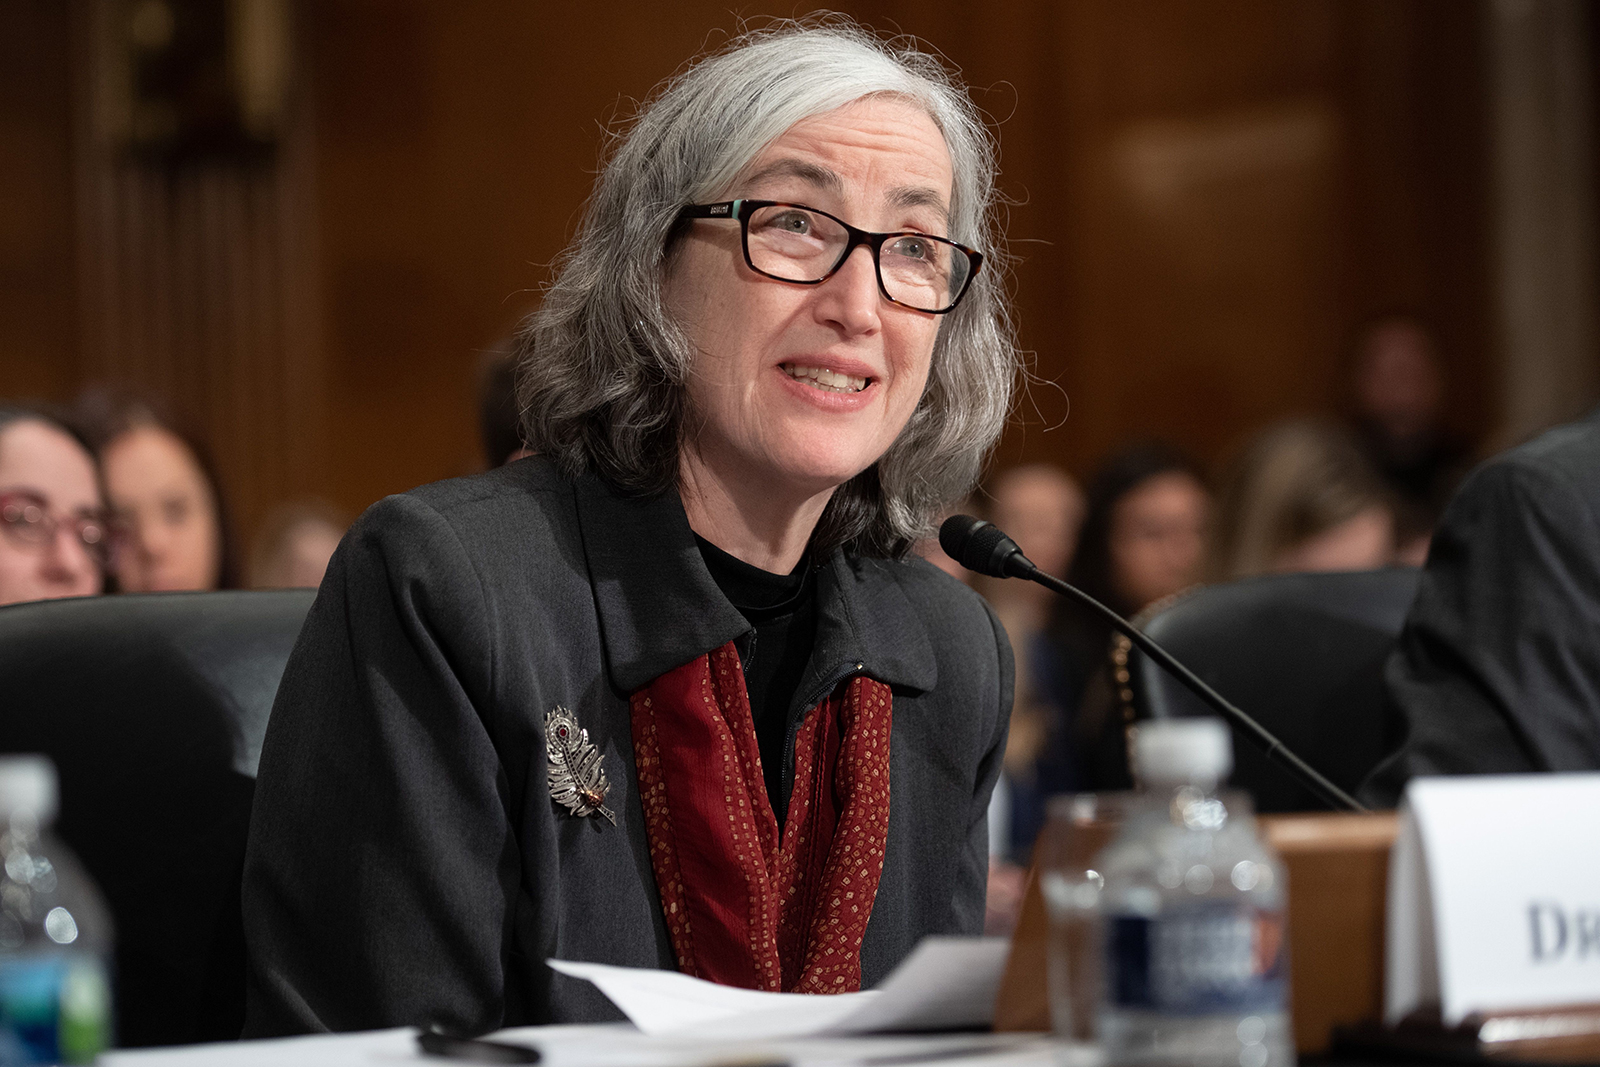 Dr. Anne Schuchat, of the Centers for Disease Control and Prevention (CDC), testifies about COVID-19, on Capitol Hill in Washington, DC on March 3.